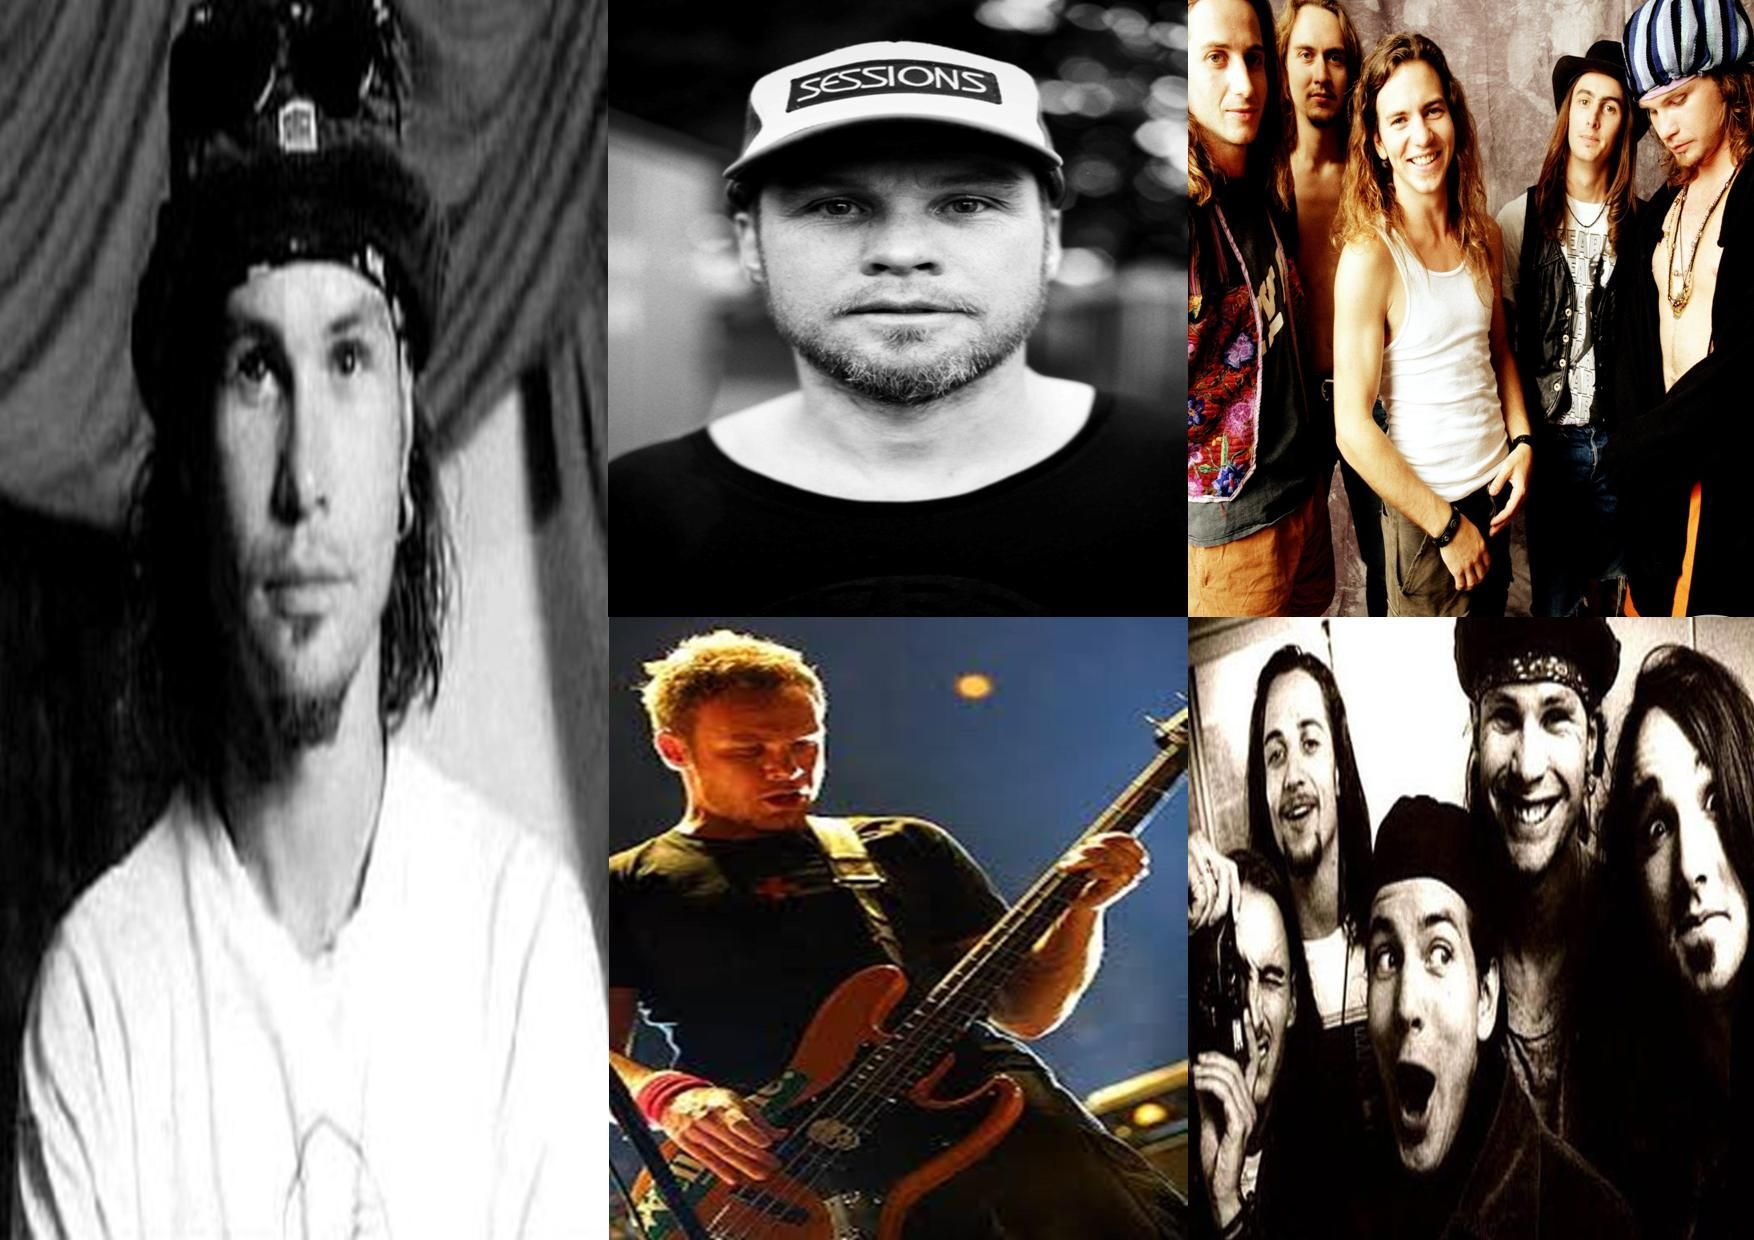 Jeff Ament ~ Born Jeffrey Allen Ament (Also known as Al Nostreet ) March 10, 1963 (age 51) in Havre, Montana, US. American musician and songwriter who serves as the bassist for the American rock band Pearl Jam. he is one of the founding members of Pearl Jam. Ament is also known for his work prior to Pearl Jam with the 1980s Seattle-based grunge rock bands Green River and Mother Love Bone Black ~ Pearl Jam  PLAY >>> www.youtube.com/watch?v=xu85_WHGd0w